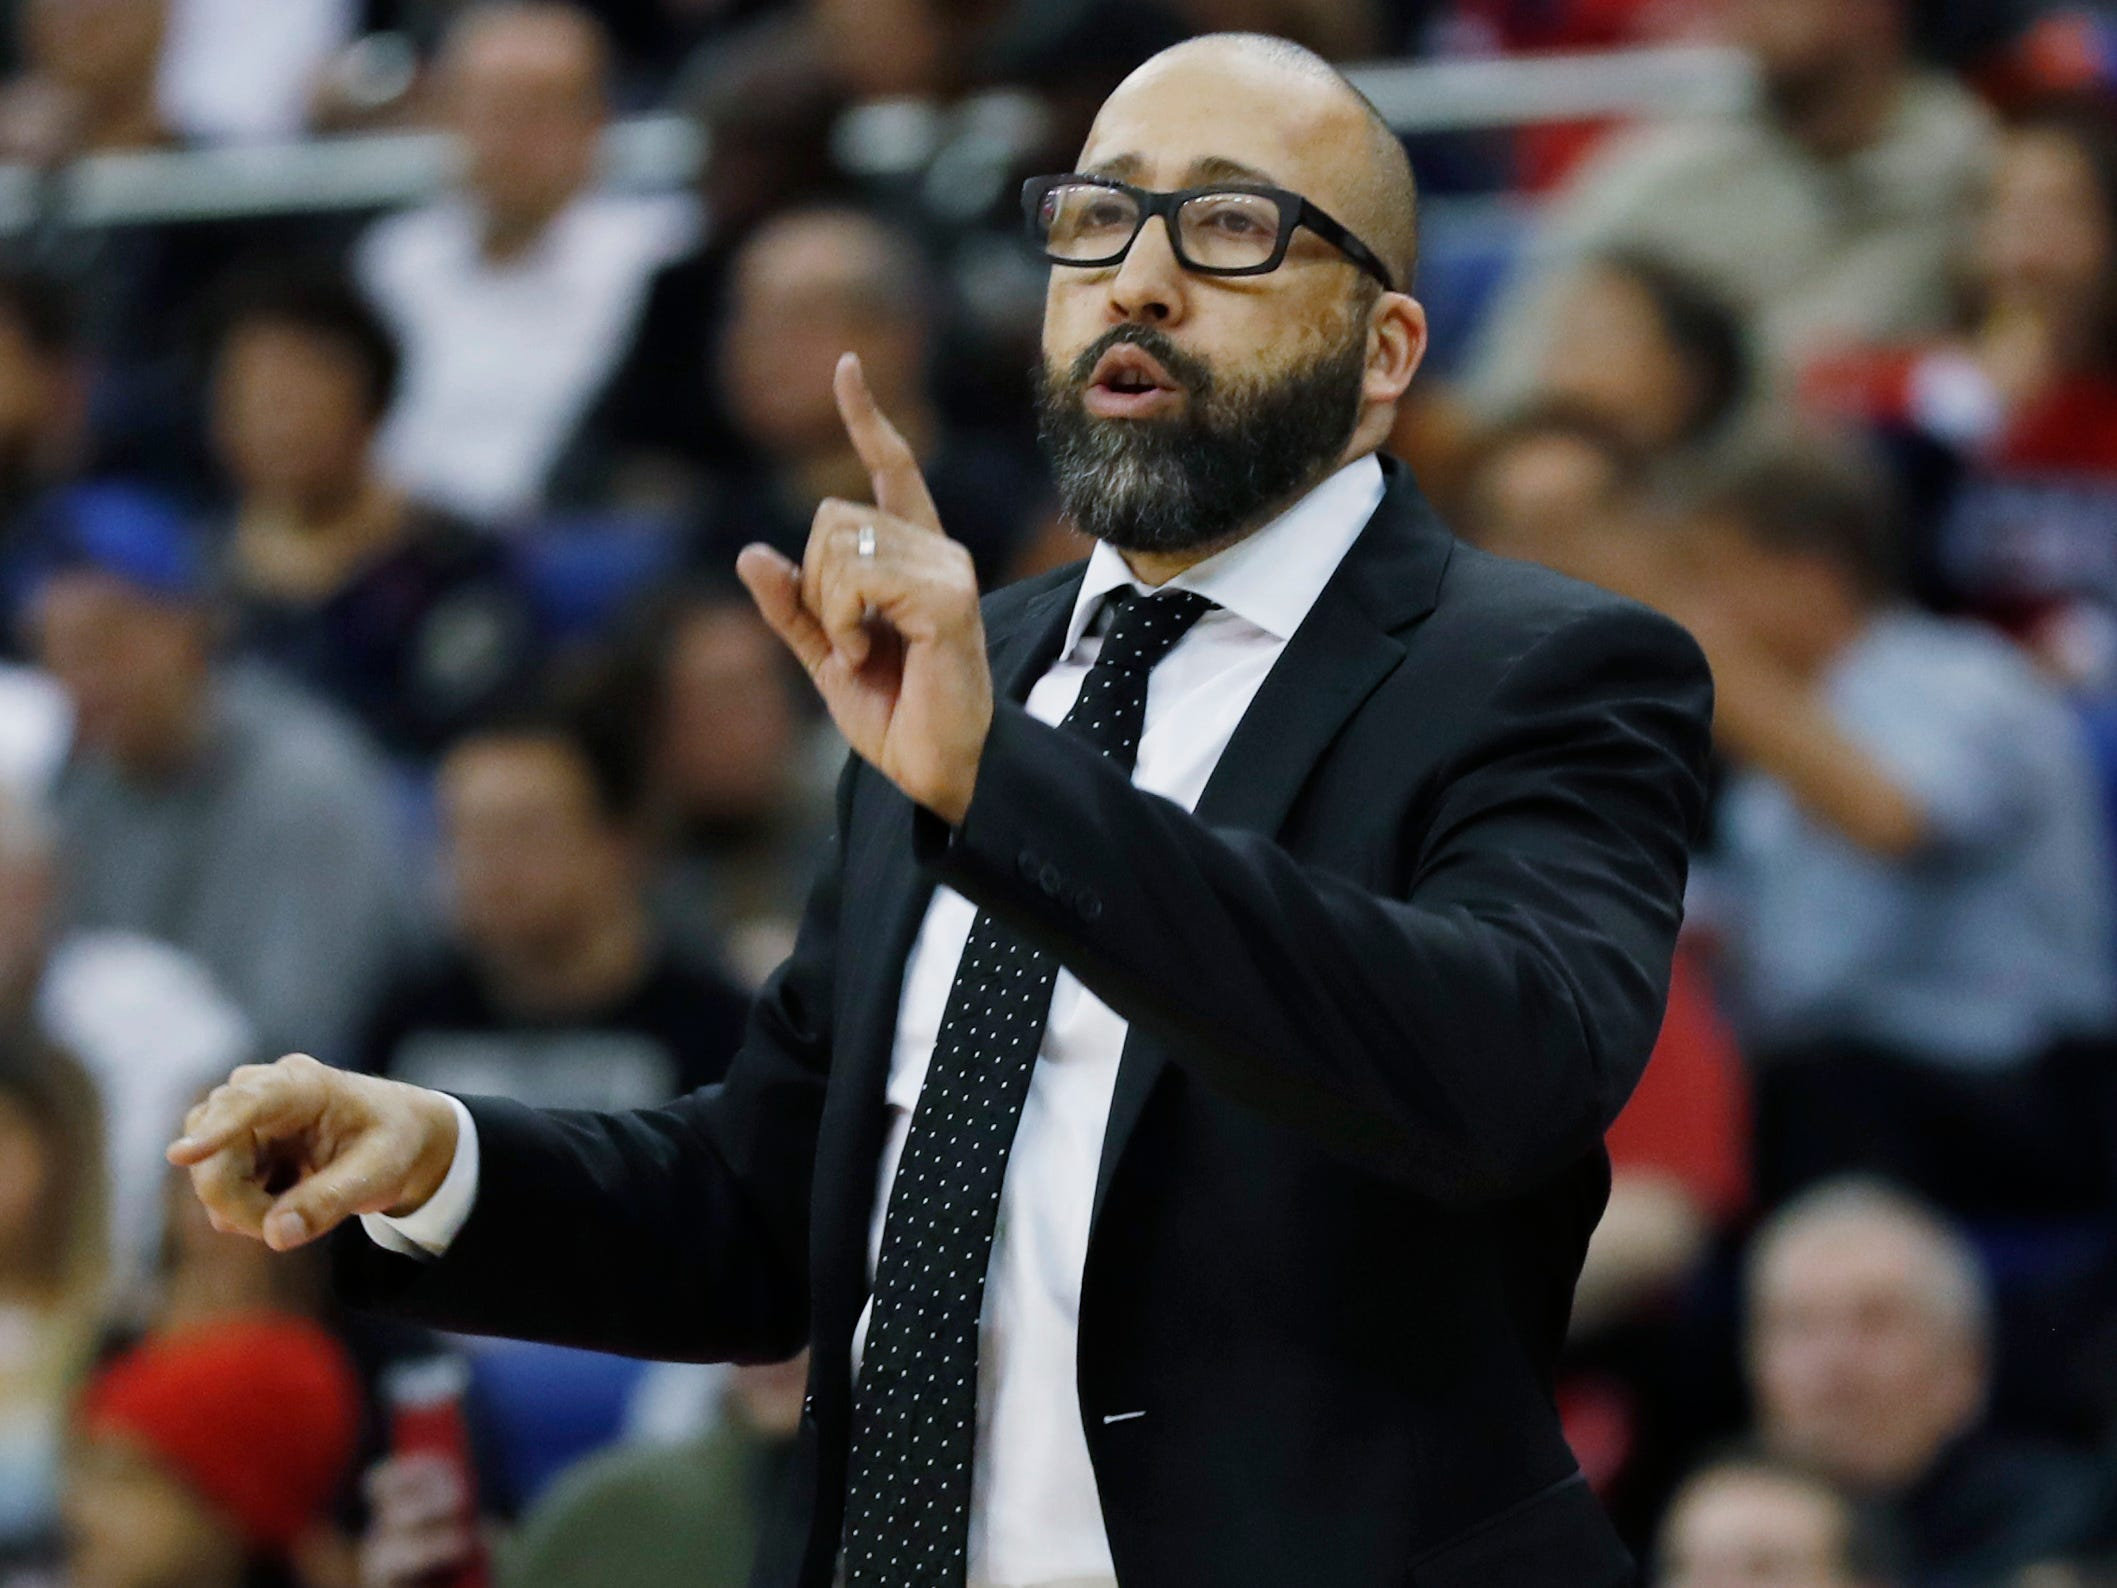 New York Knicks head coach David Fizdale gestures during an NBA basketball game between New York Knicks and Washington Wizards at the O2 Arena, in London, Thursday, Jan.17, 2019.